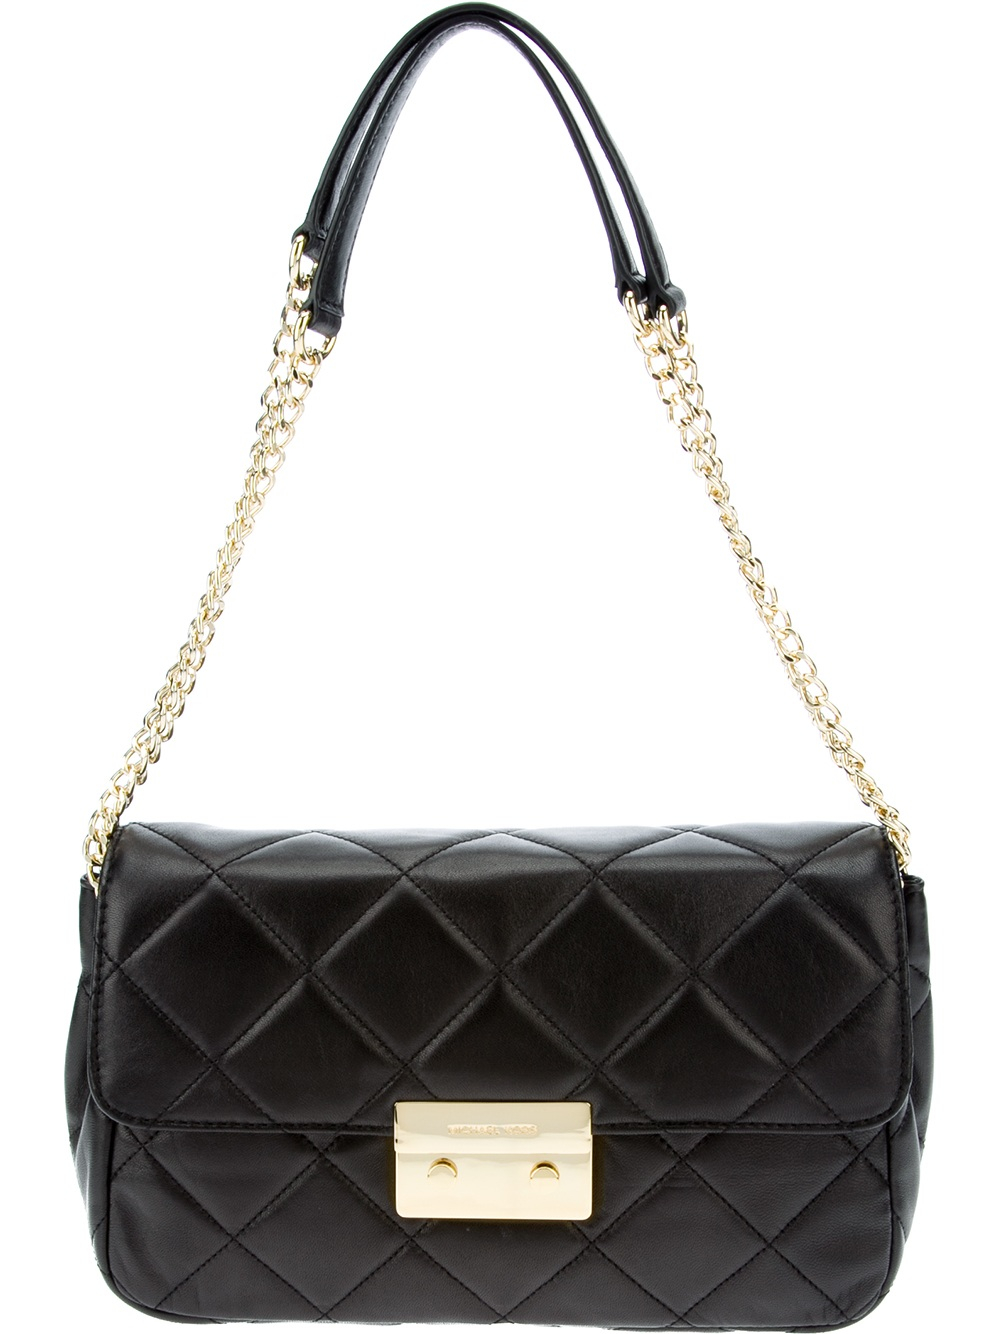 072155ace92d75 ... ebay gallery. previously sold at farfetch womens michael kors quilted  bag 3dc3b 90e2c